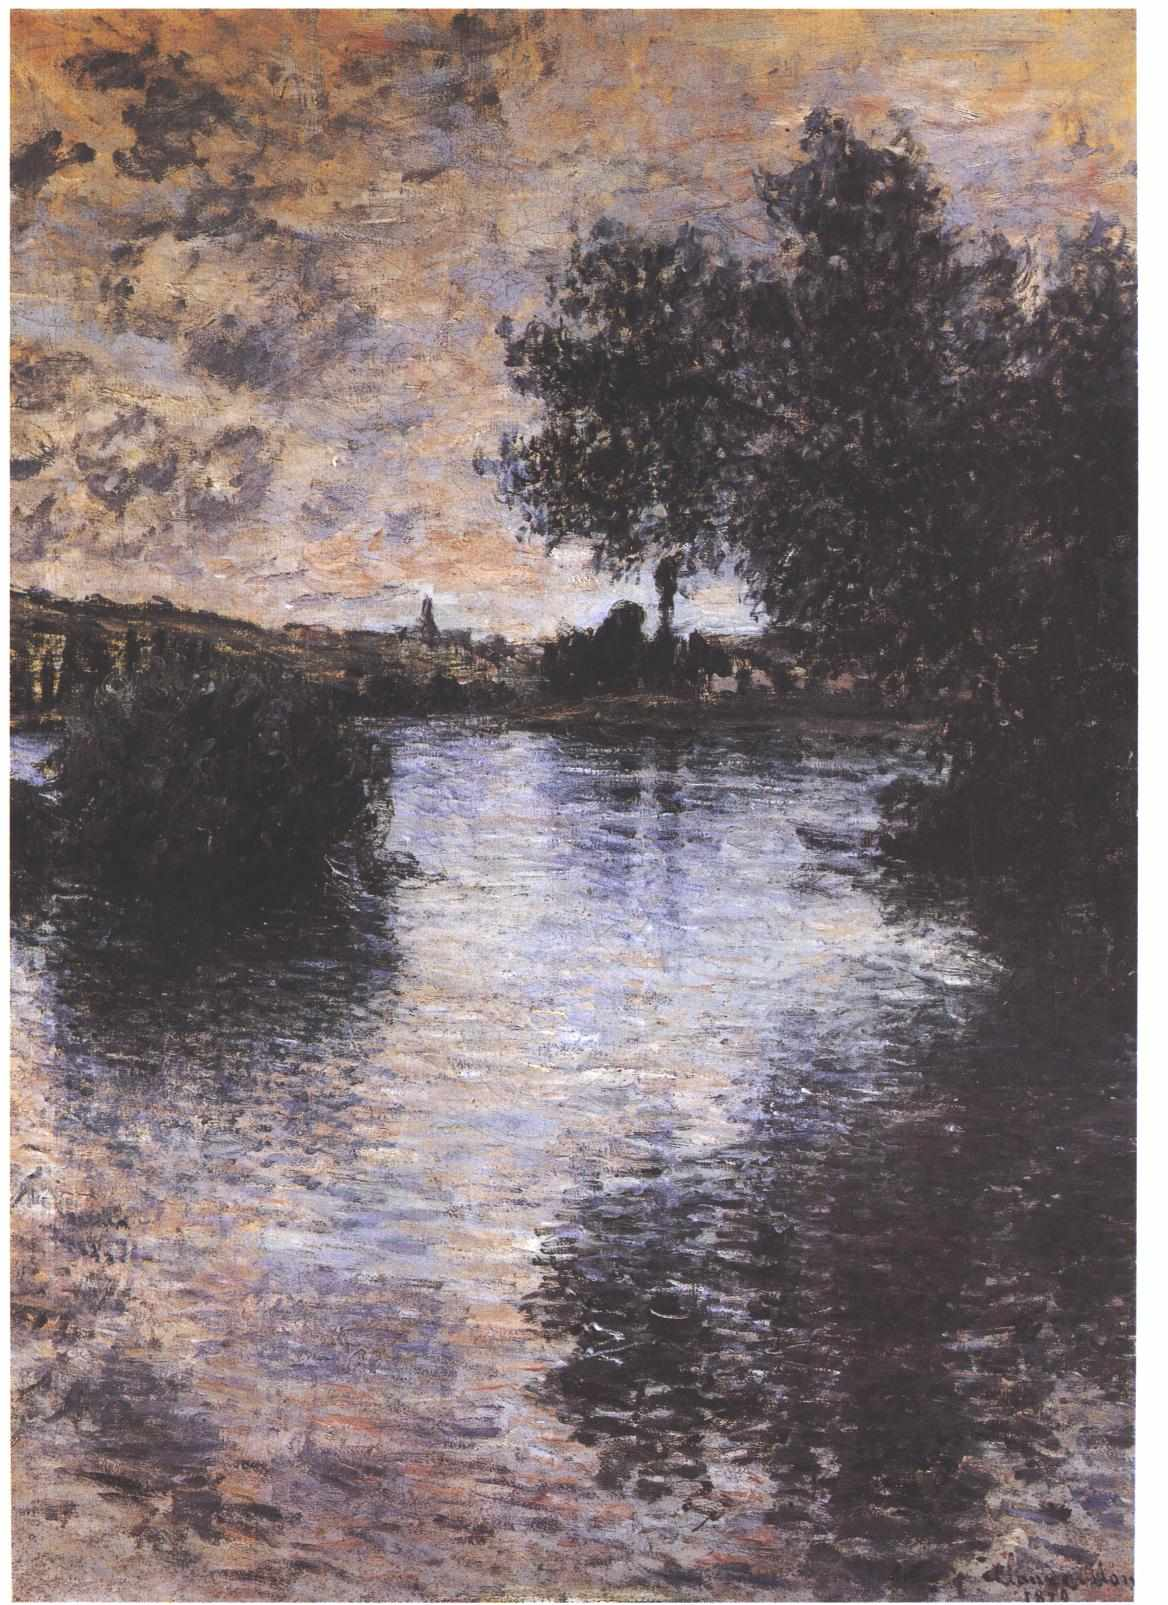 http://upload.wikimedia.org/wikipedia/commons/e/e9/Monet_-_Die_Seine_bei_Vetheuil.jpg